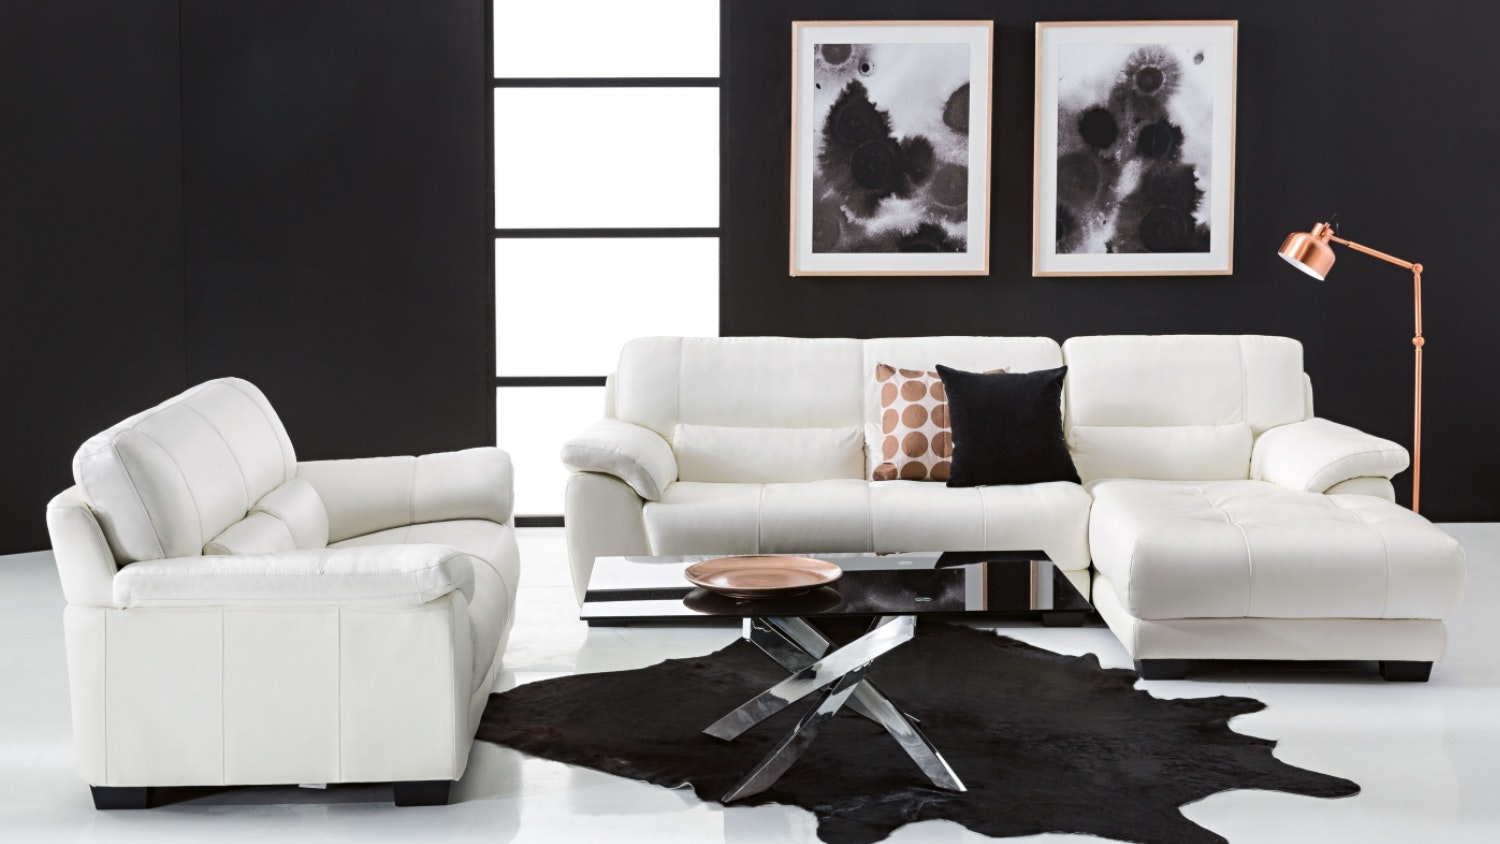 Longbeach 2 Seater Leather Sofa + 2.5 Seater Leather Sofa with Chaise Package